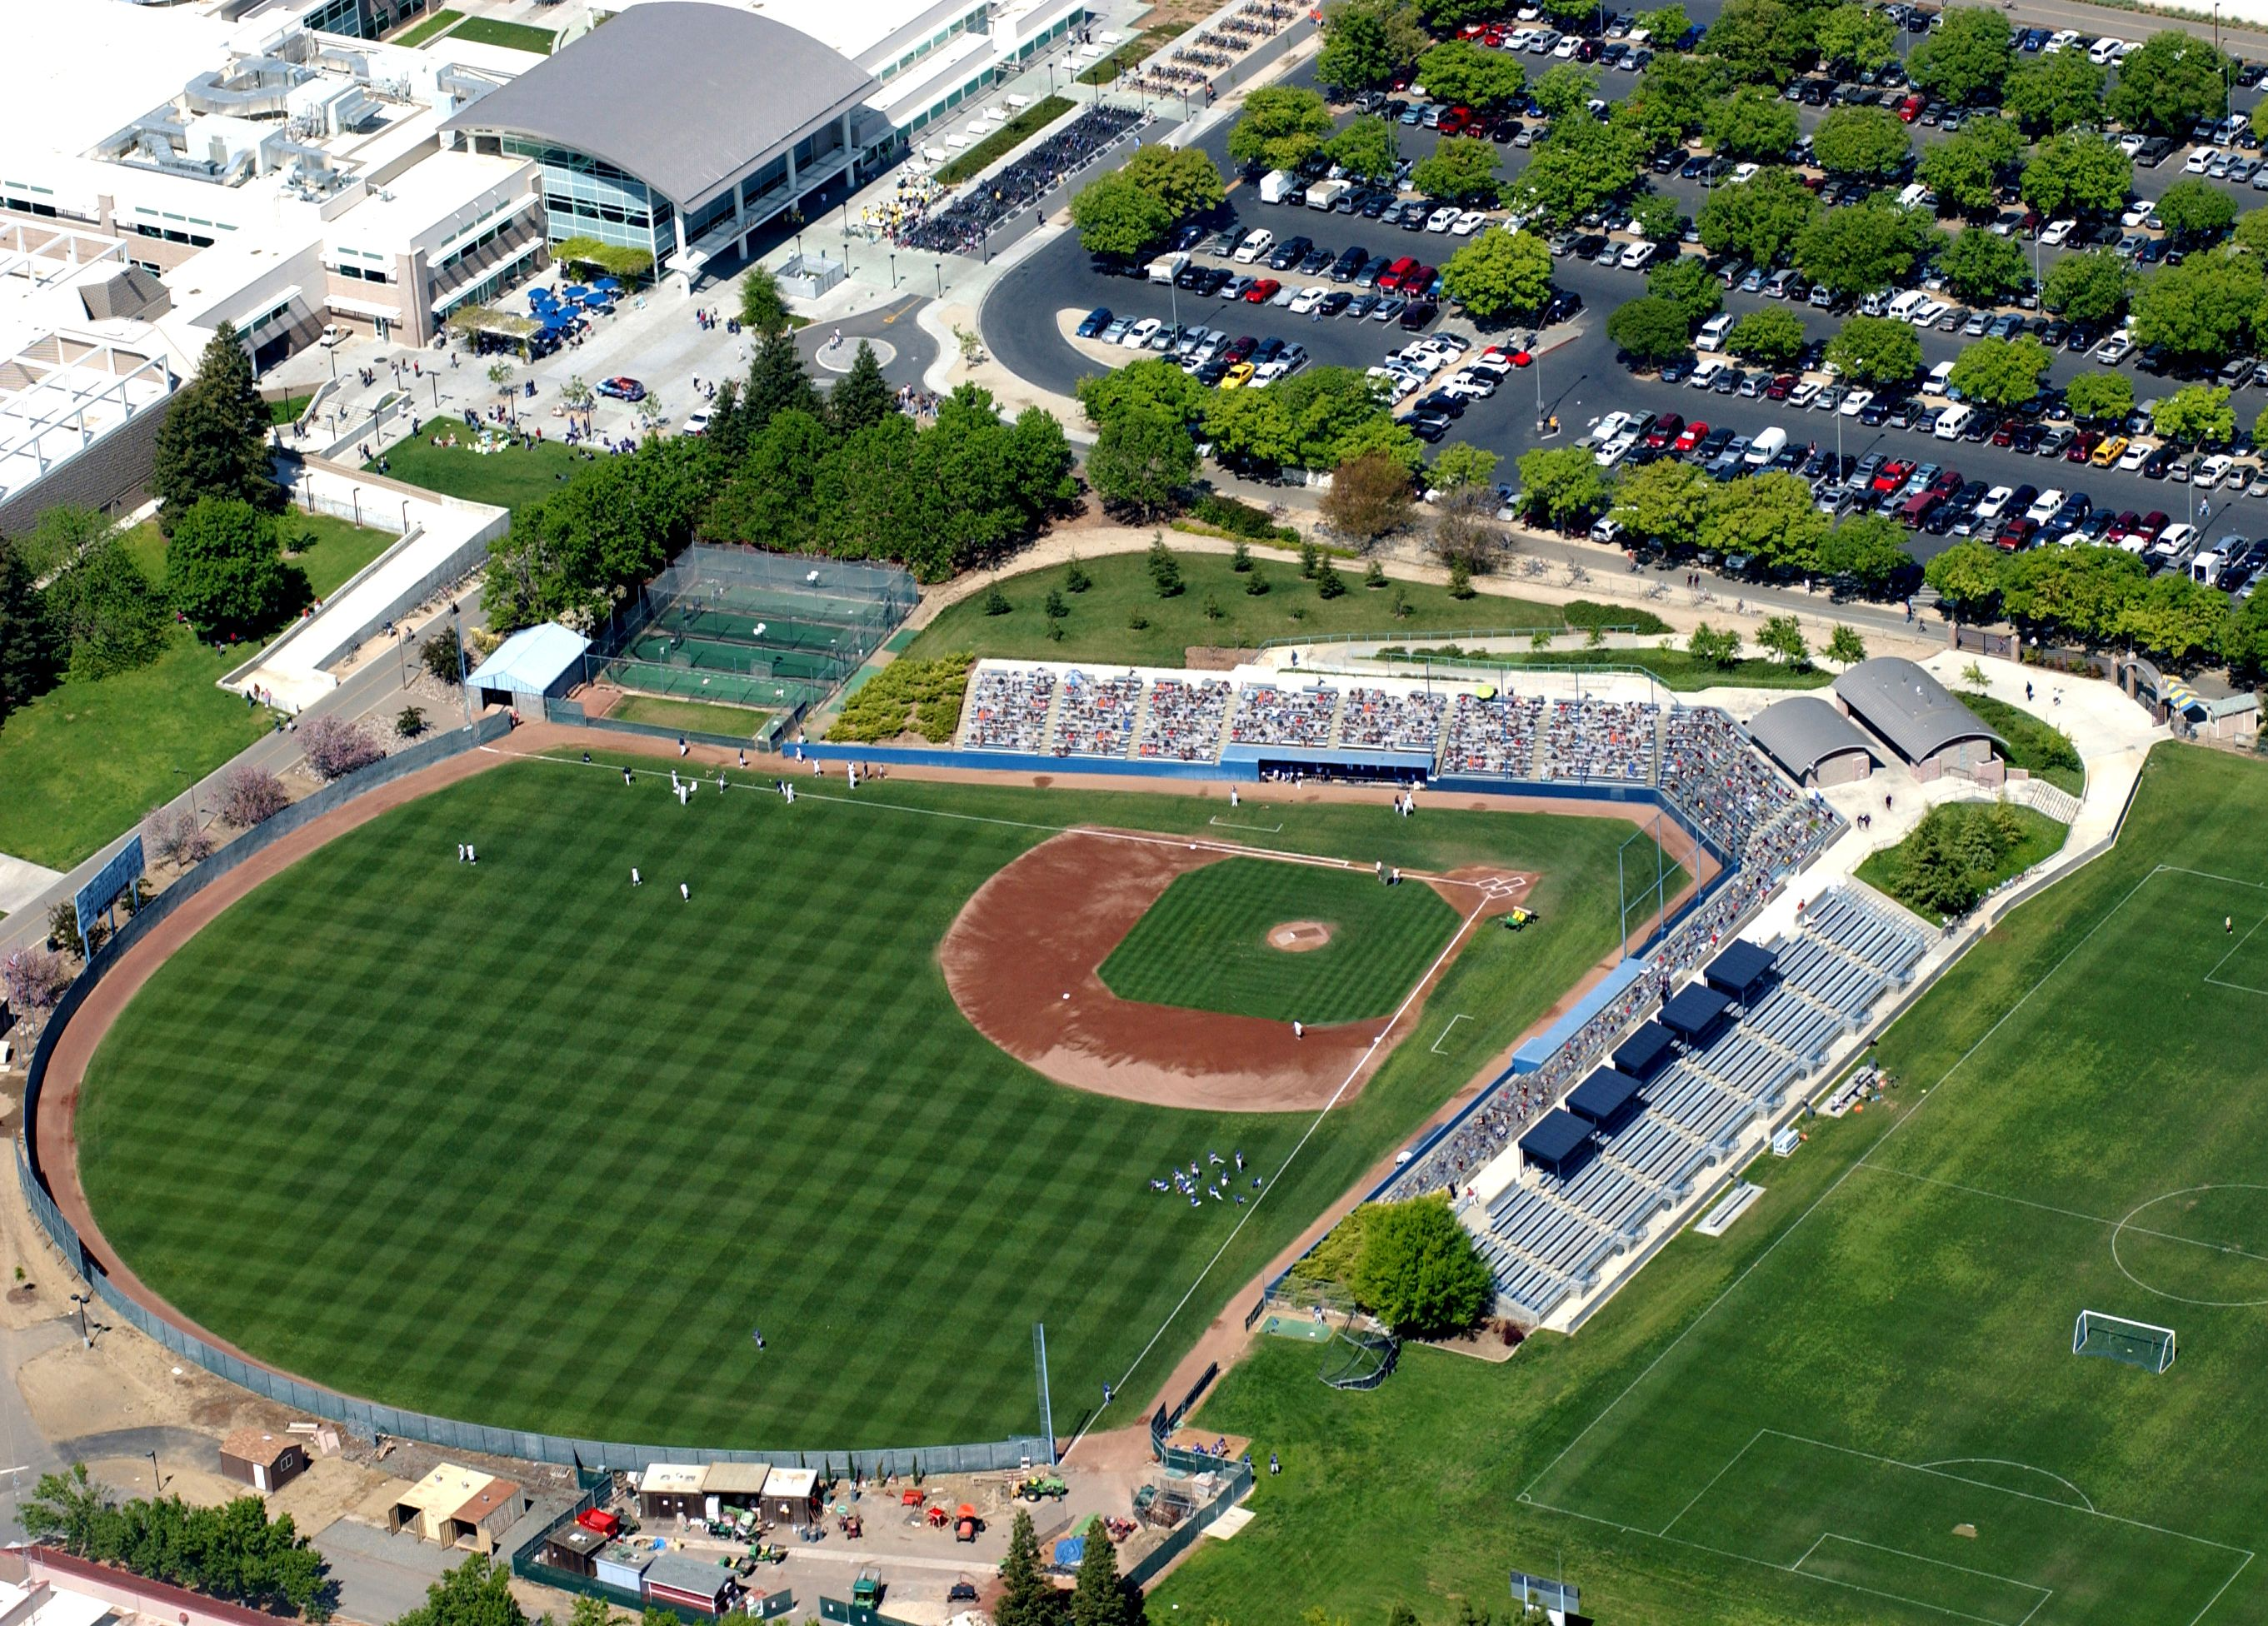 Dobbins Stadium Home Of Aggie Baseball Aggie Baseball Rock Climbing Wall College Baseball